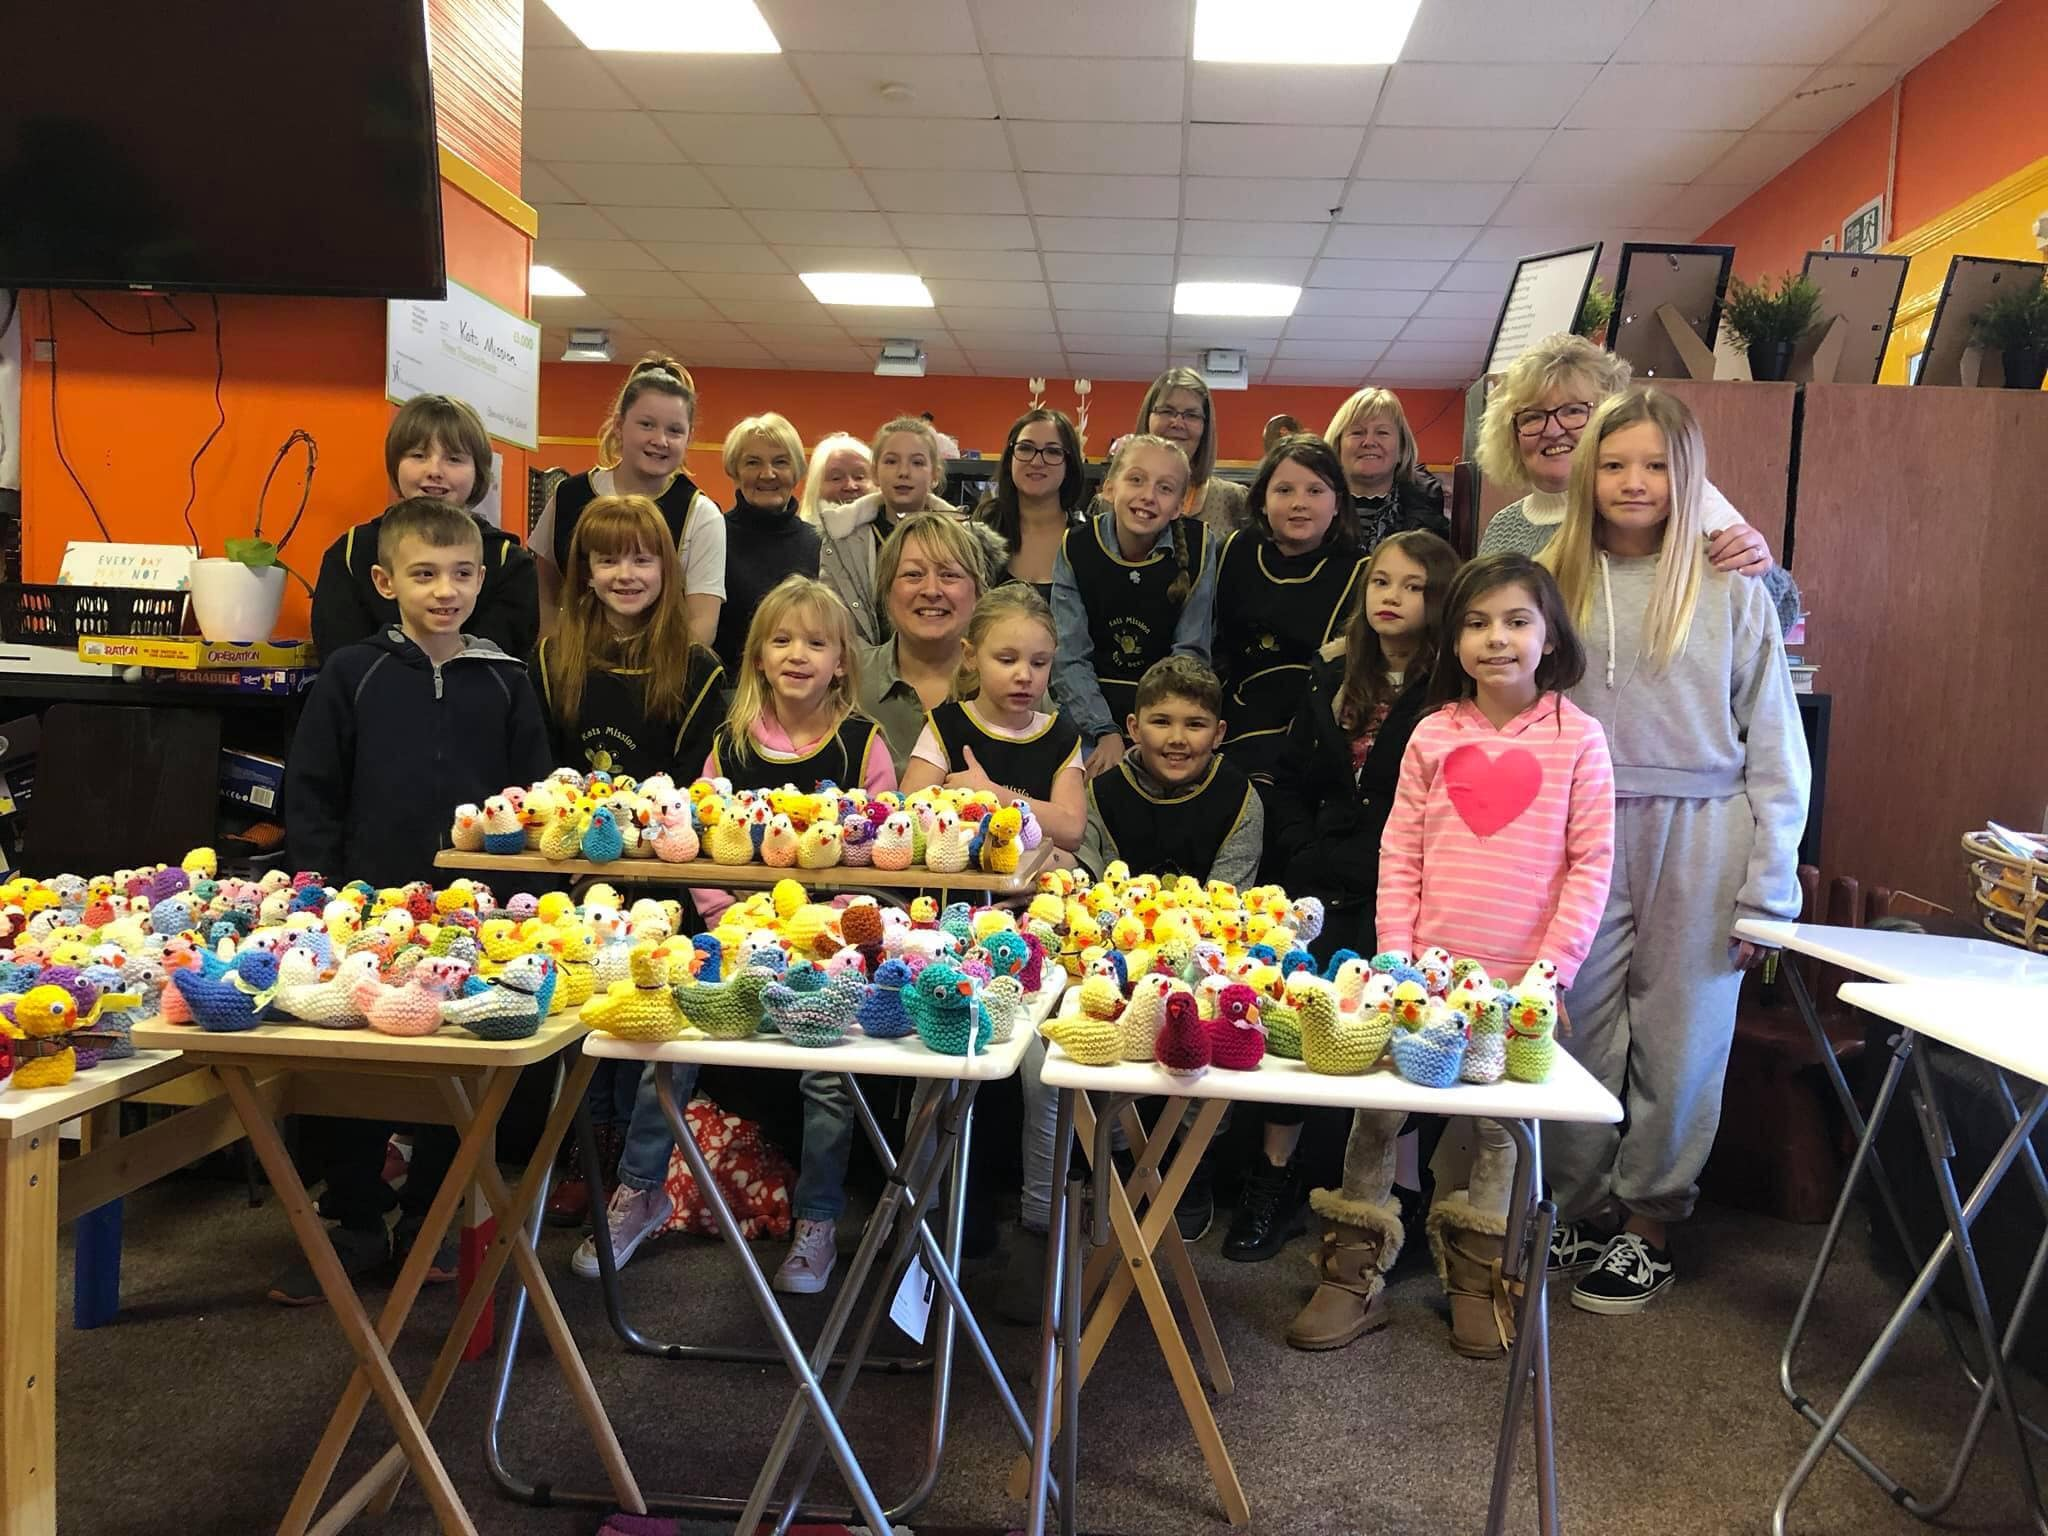 Kats Mission volunteers who helped create the Easter chicks of the Made For Maggies charity.